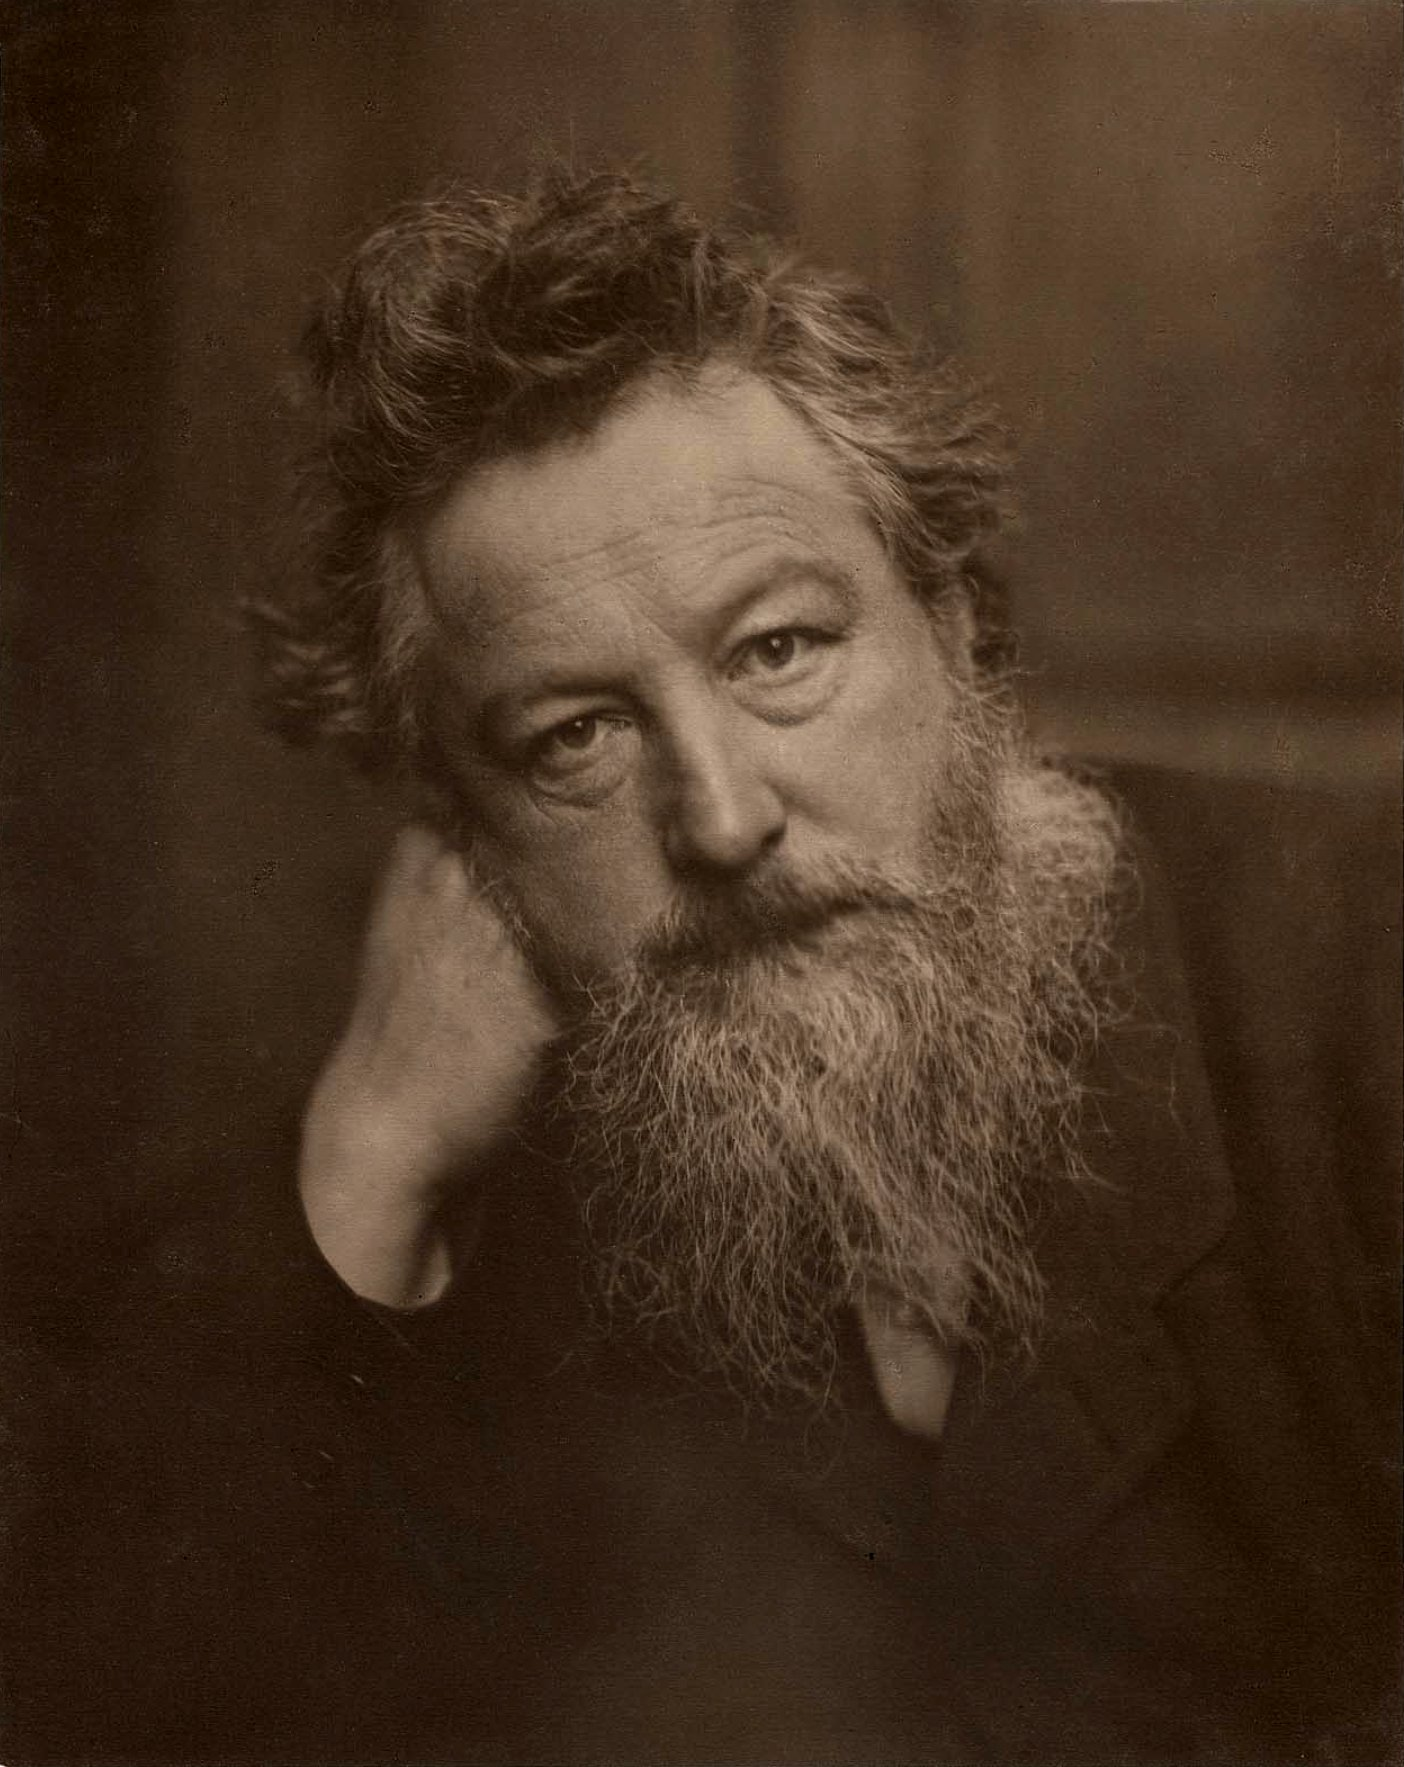 William Morris by Sir Emery Walker, 19 January 1889 © National Portrait Gallery, London